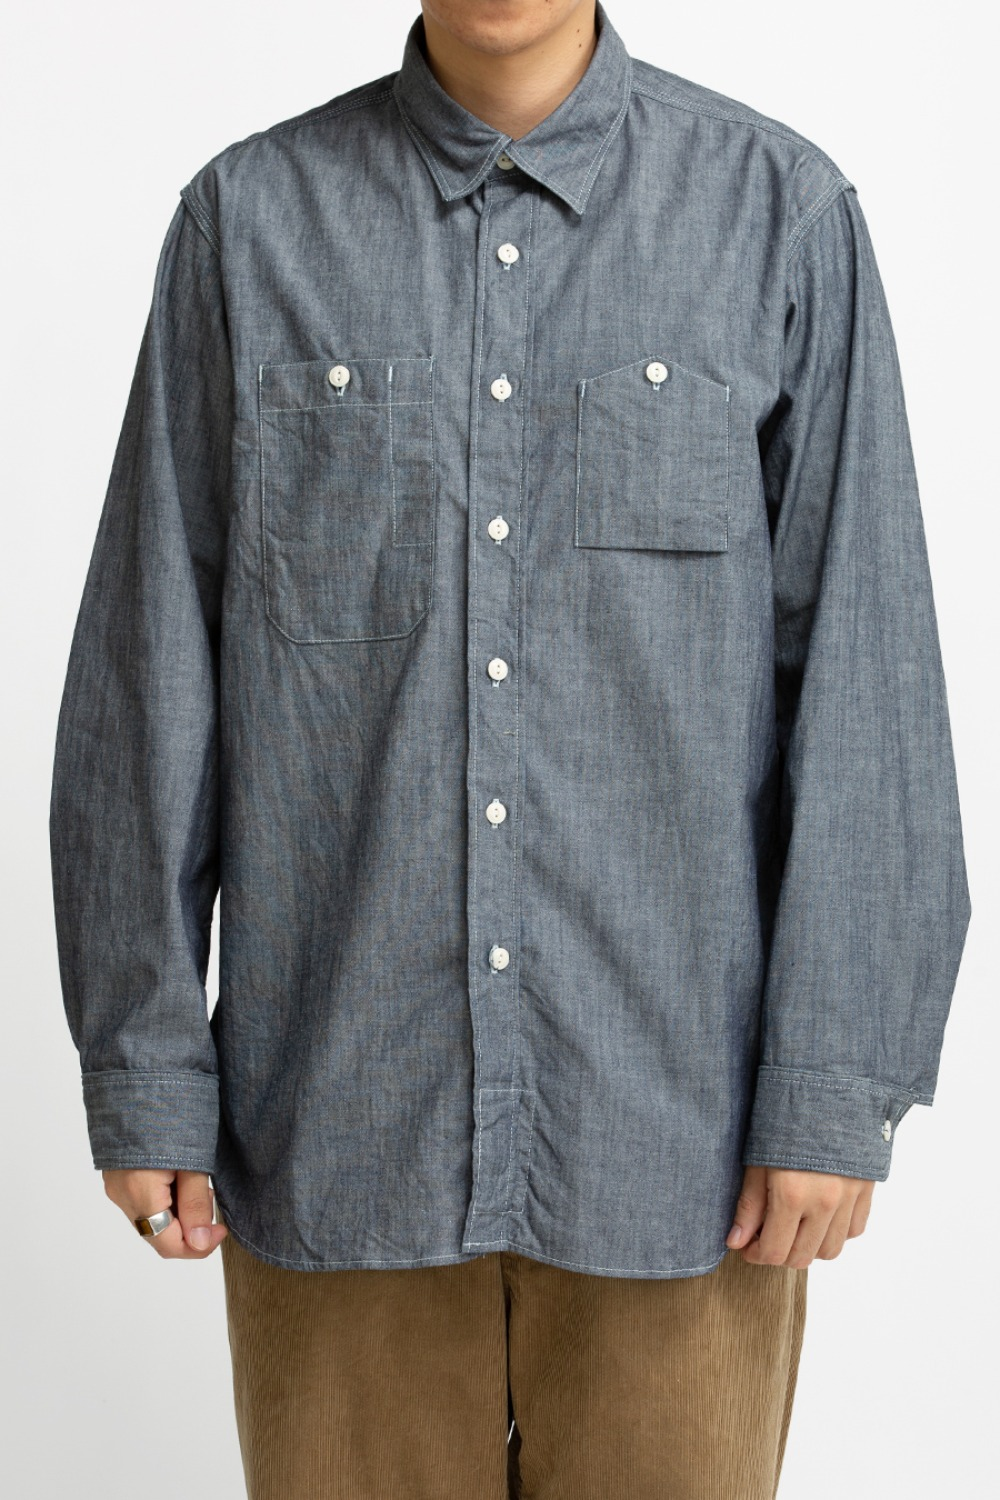 WORK SHIRT INDIGO COTTON CONE CHAMBRAY